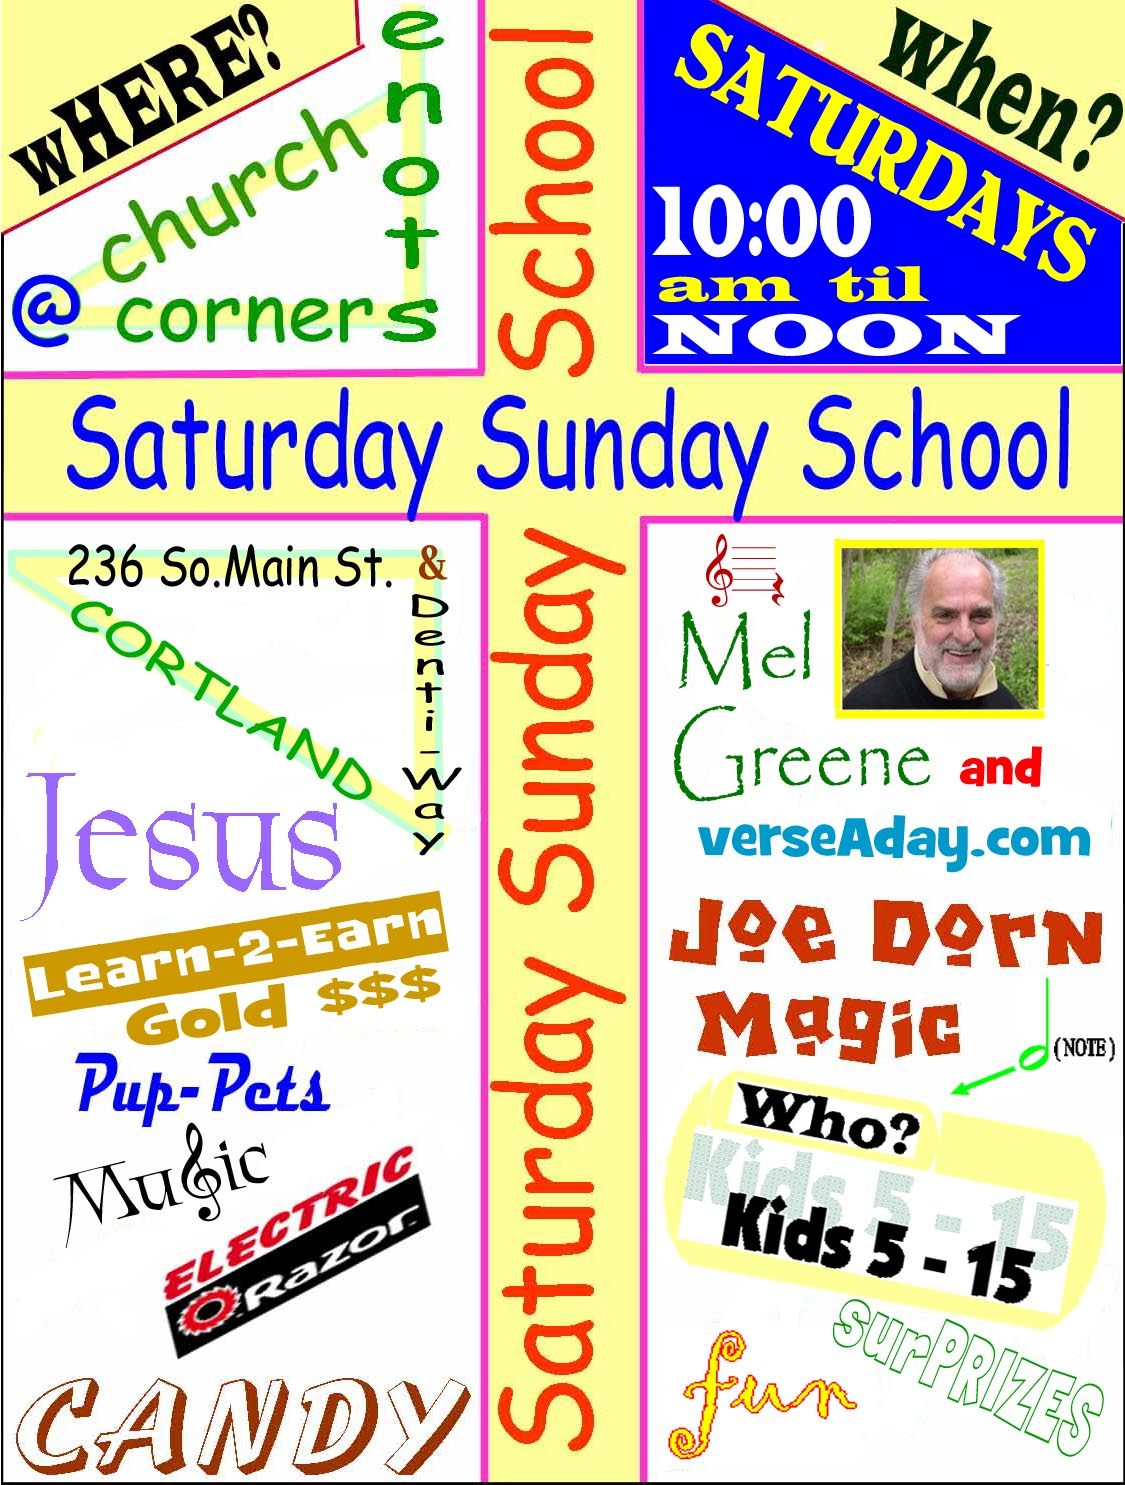 Sunday School Invitation Flyer Examples